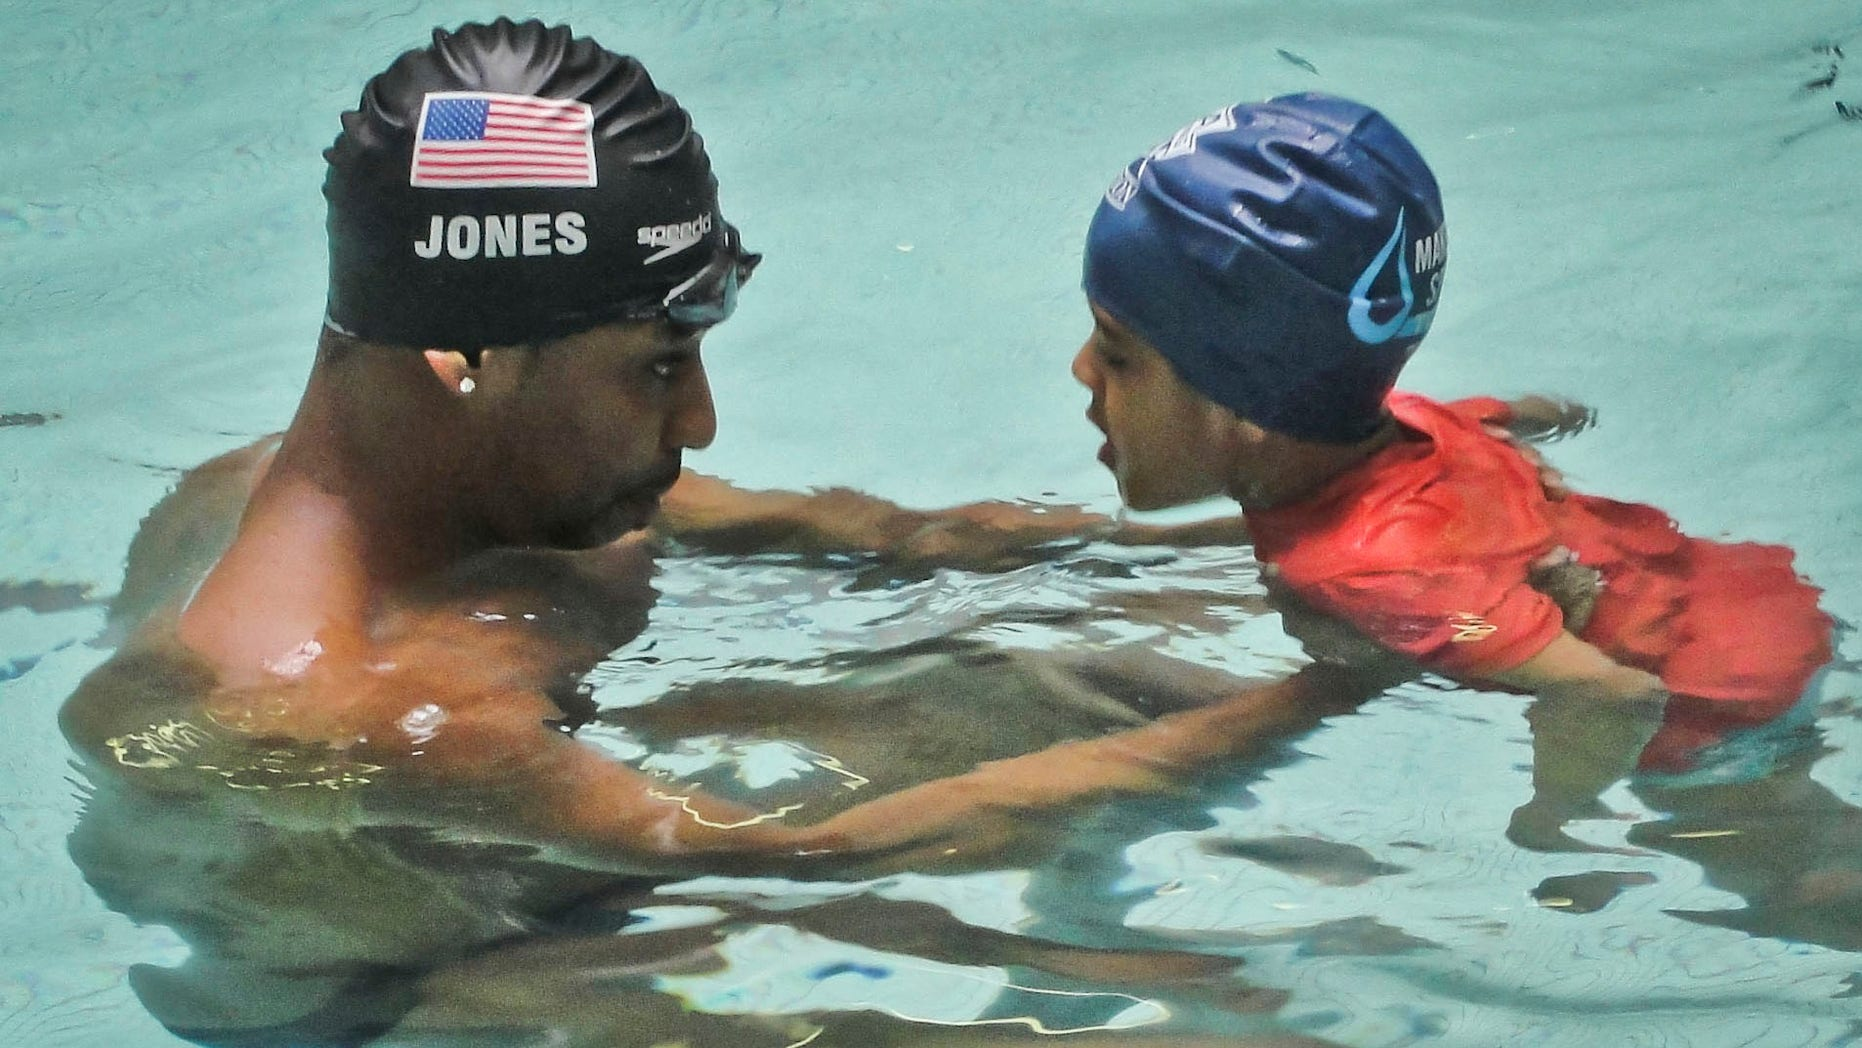 """Olympic gold medalist Cullen Jones give swimming lessons to Niko Diop, a pre-kindergarden student at Harlem's P.S. 125 in New York.  Jones is ambassador for the 5th Annual USA Swimming Foundation's """"Make a Splash Tour,"""" providing free swimming lessons, water safety education and awareness at city pools.  (AP Photo/Simone Smalls PR)"""